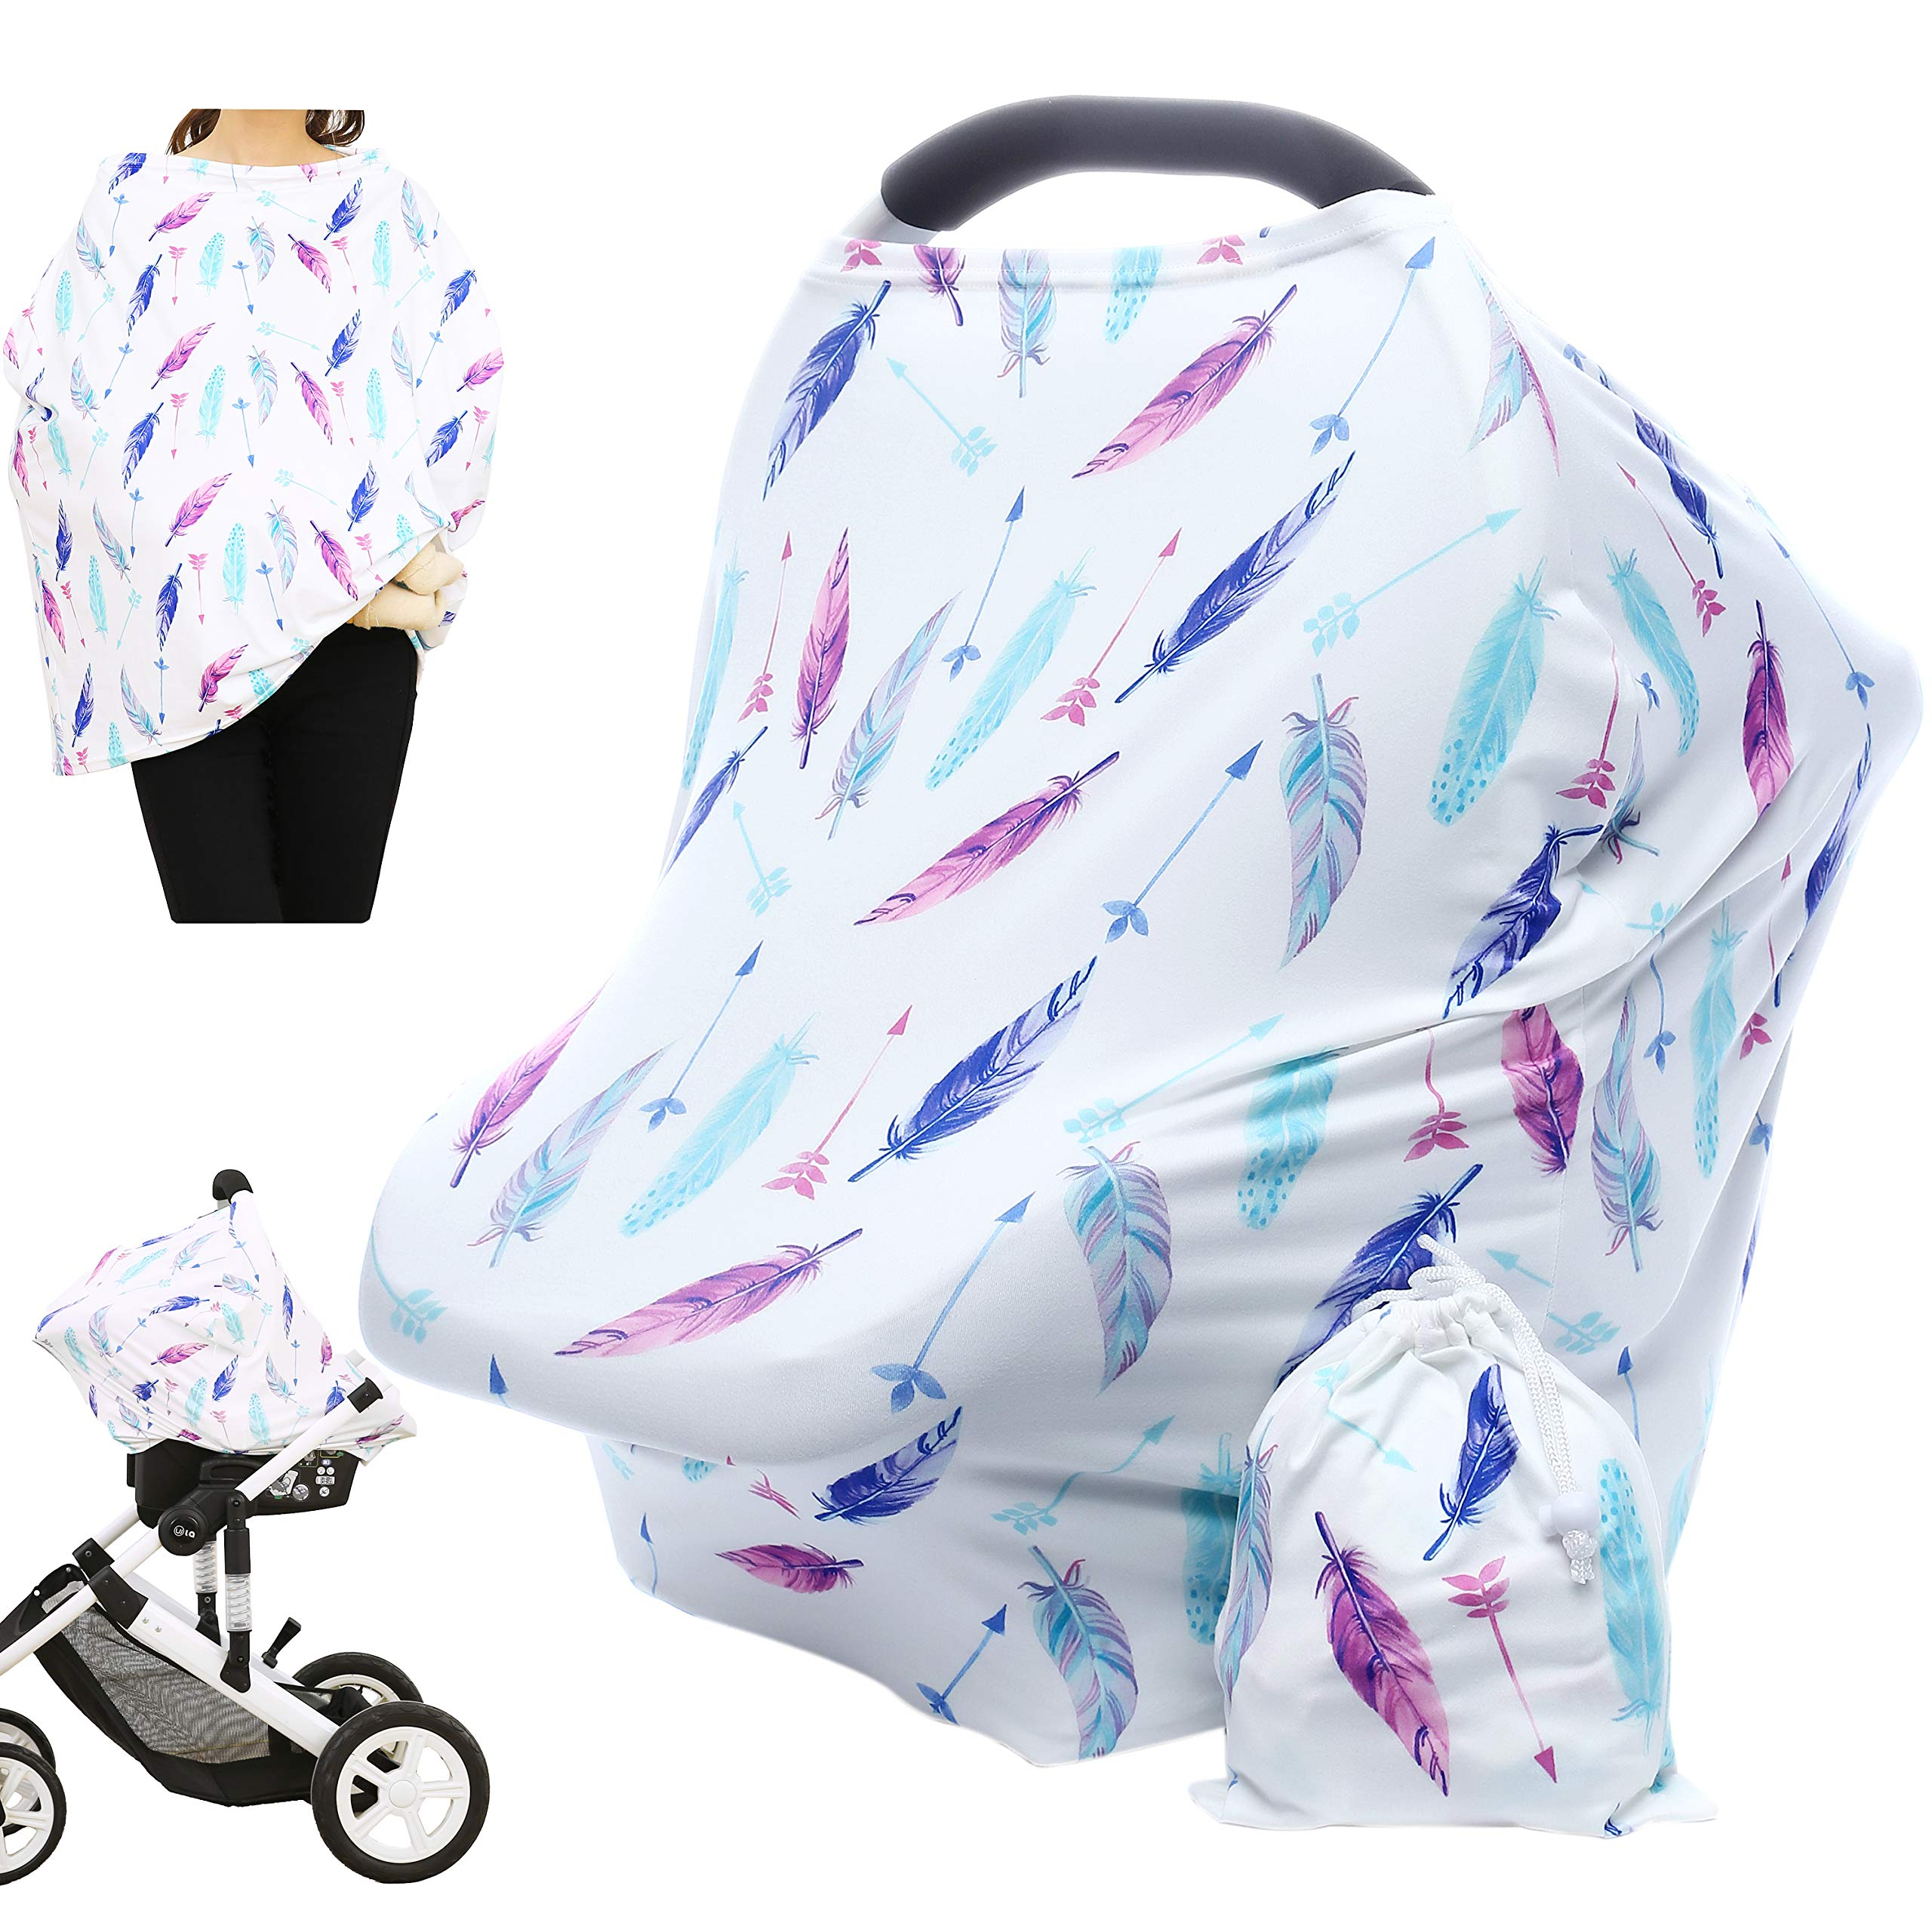 Hicoco Nursing Cover Carseat Canopy - Baby Breastfeeding Cover, Car Seat Covers for Babies, Multi Use Nursing Scarf, Infant Stroller Cover, Boys and Girls Shower Gifts (Feather) by Hicoco